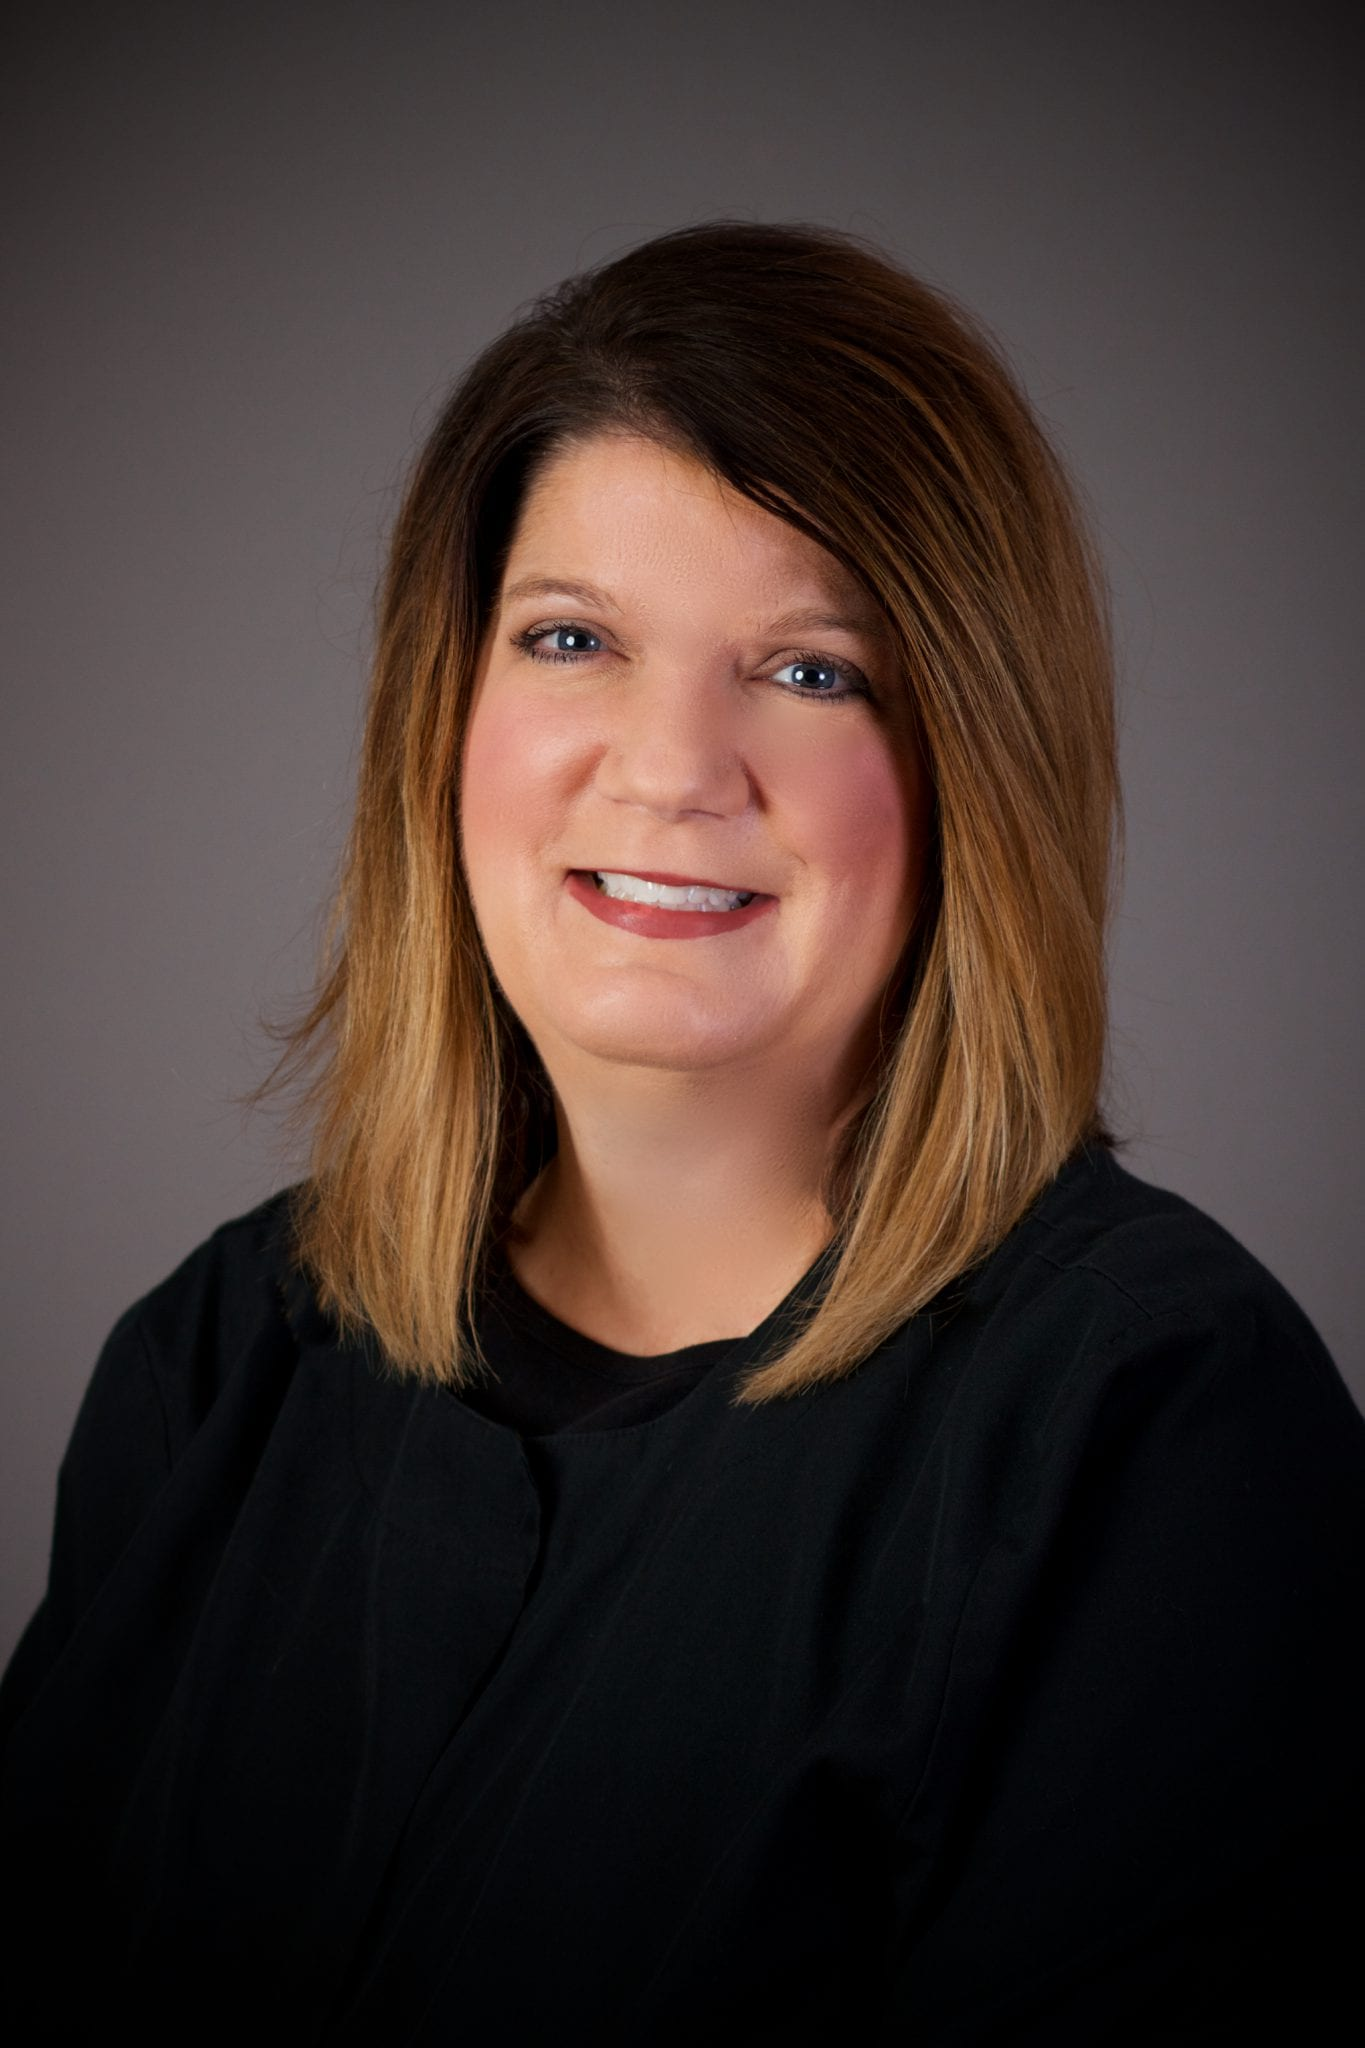 Robin who is an Administrative Assistant at Birdwell and Guffey Family Dentistry in South Knoxville